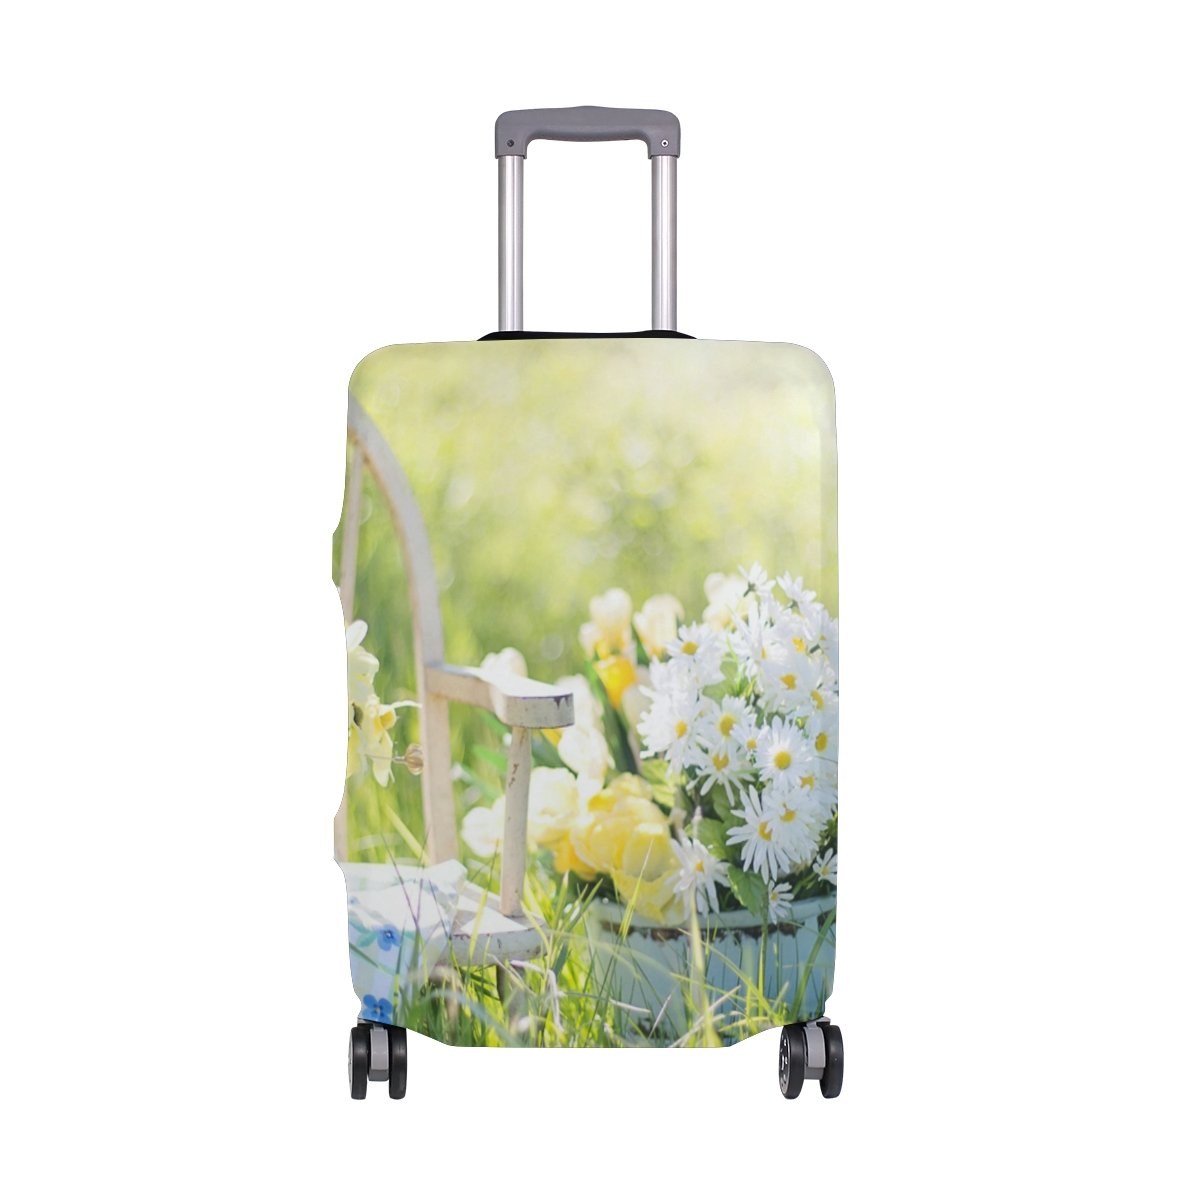 OREZI 3D Summer Still Life Luggage Protector Suitcase Cover 18-32 Inch